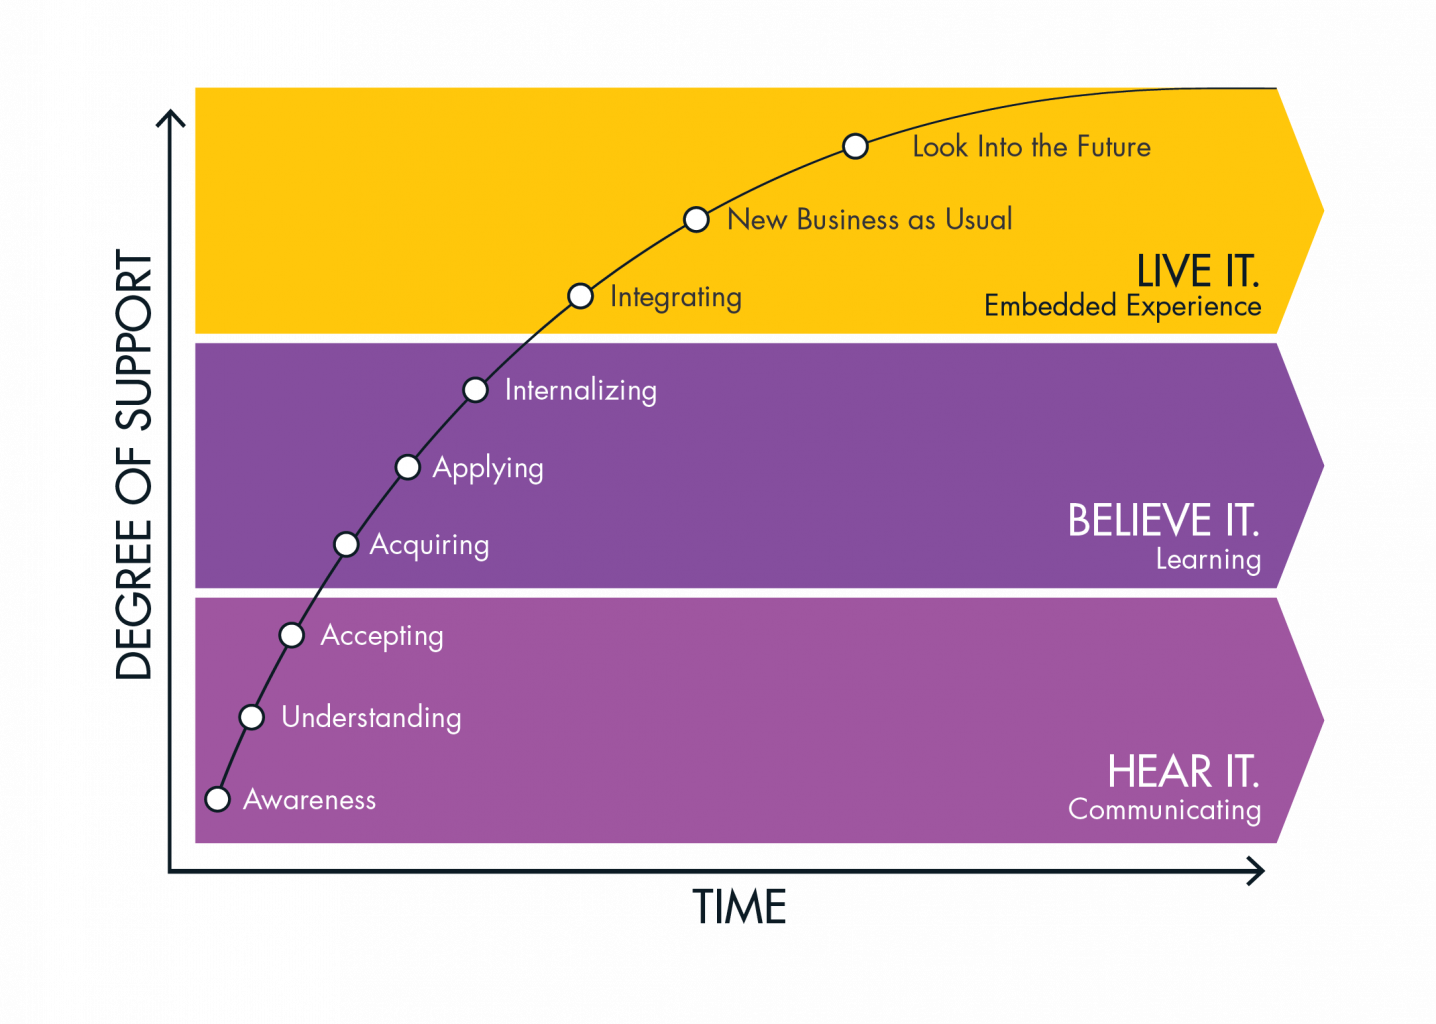 XPLANE's Activation Curve Graph: Phase 1 is Hear it (via strategic communications), Phase 2 is Believe it (via strategic learnings), Phase 3 is Live it (via experience)